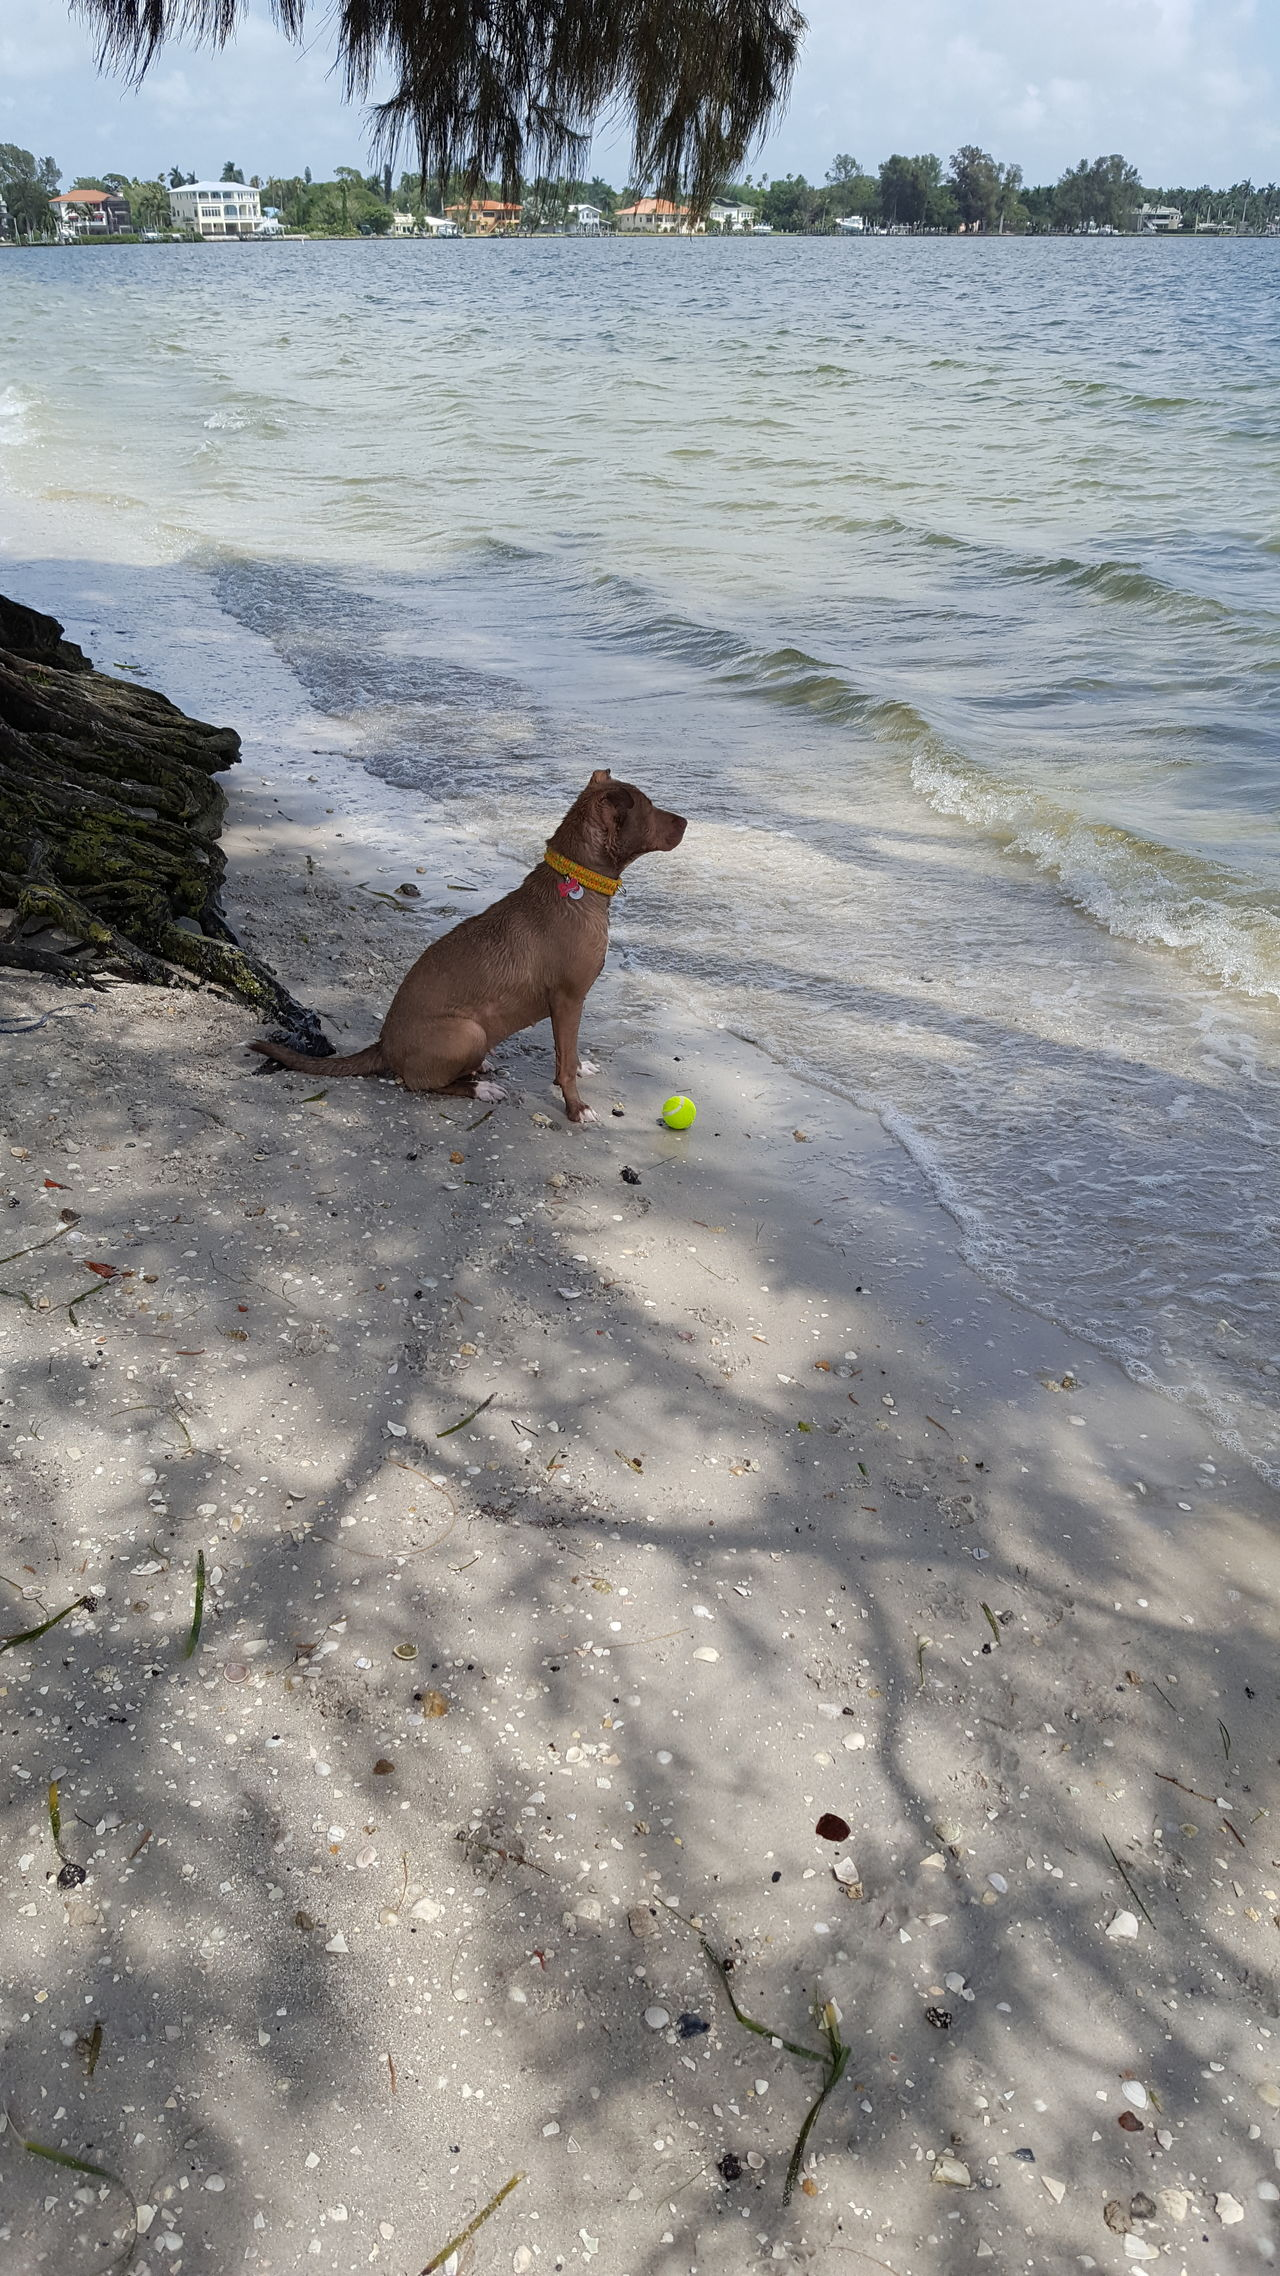 Looking for Dad Looking For Dad Honey Bear Patiently Waiting Palma Sola Tennis Ball Pitbull Lives Matter Pitbull Love Beach Life Love My Girl Loving Life  Florida Life